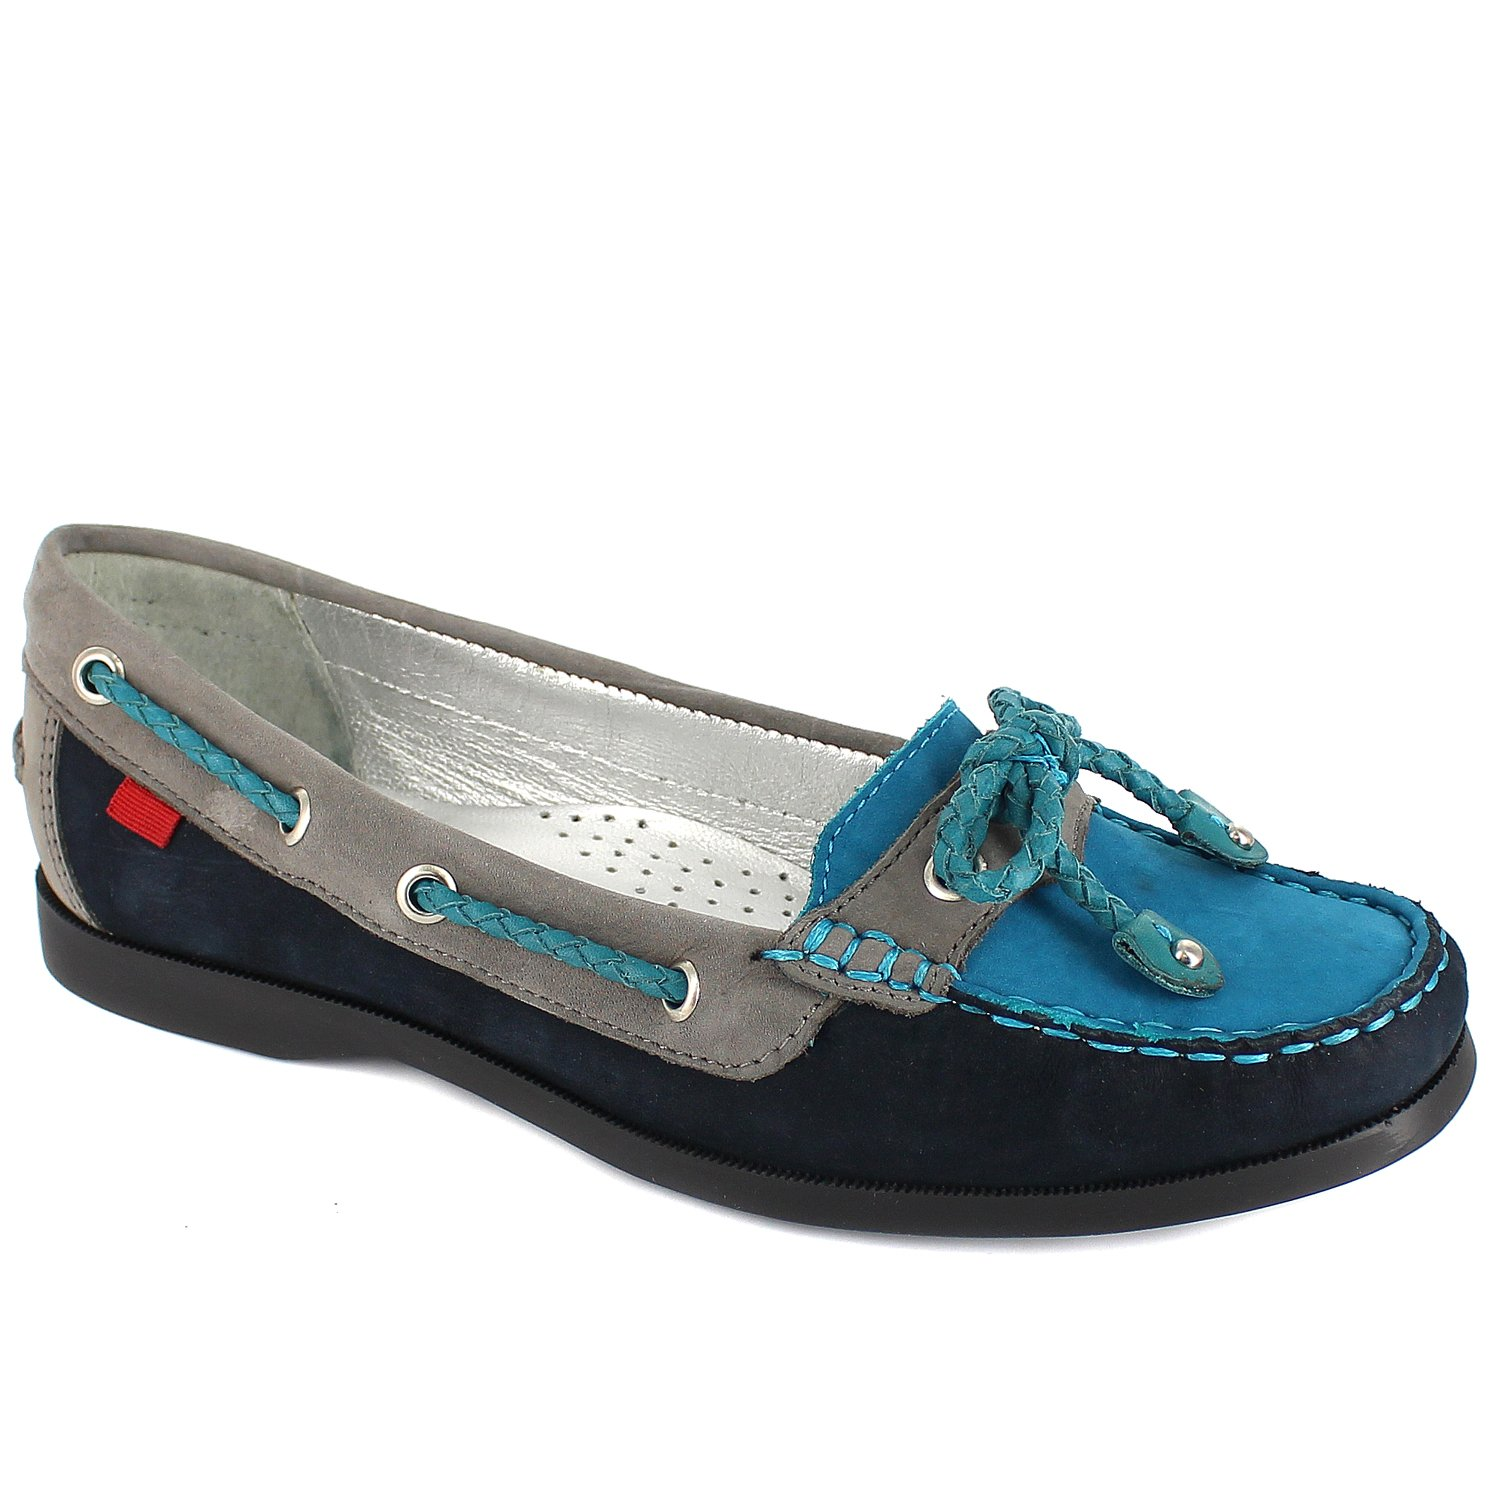 Marc Joseph New York Womens Liberty Cruise Leather Lining Shoe With Bow Tie Multi Navy Size 10